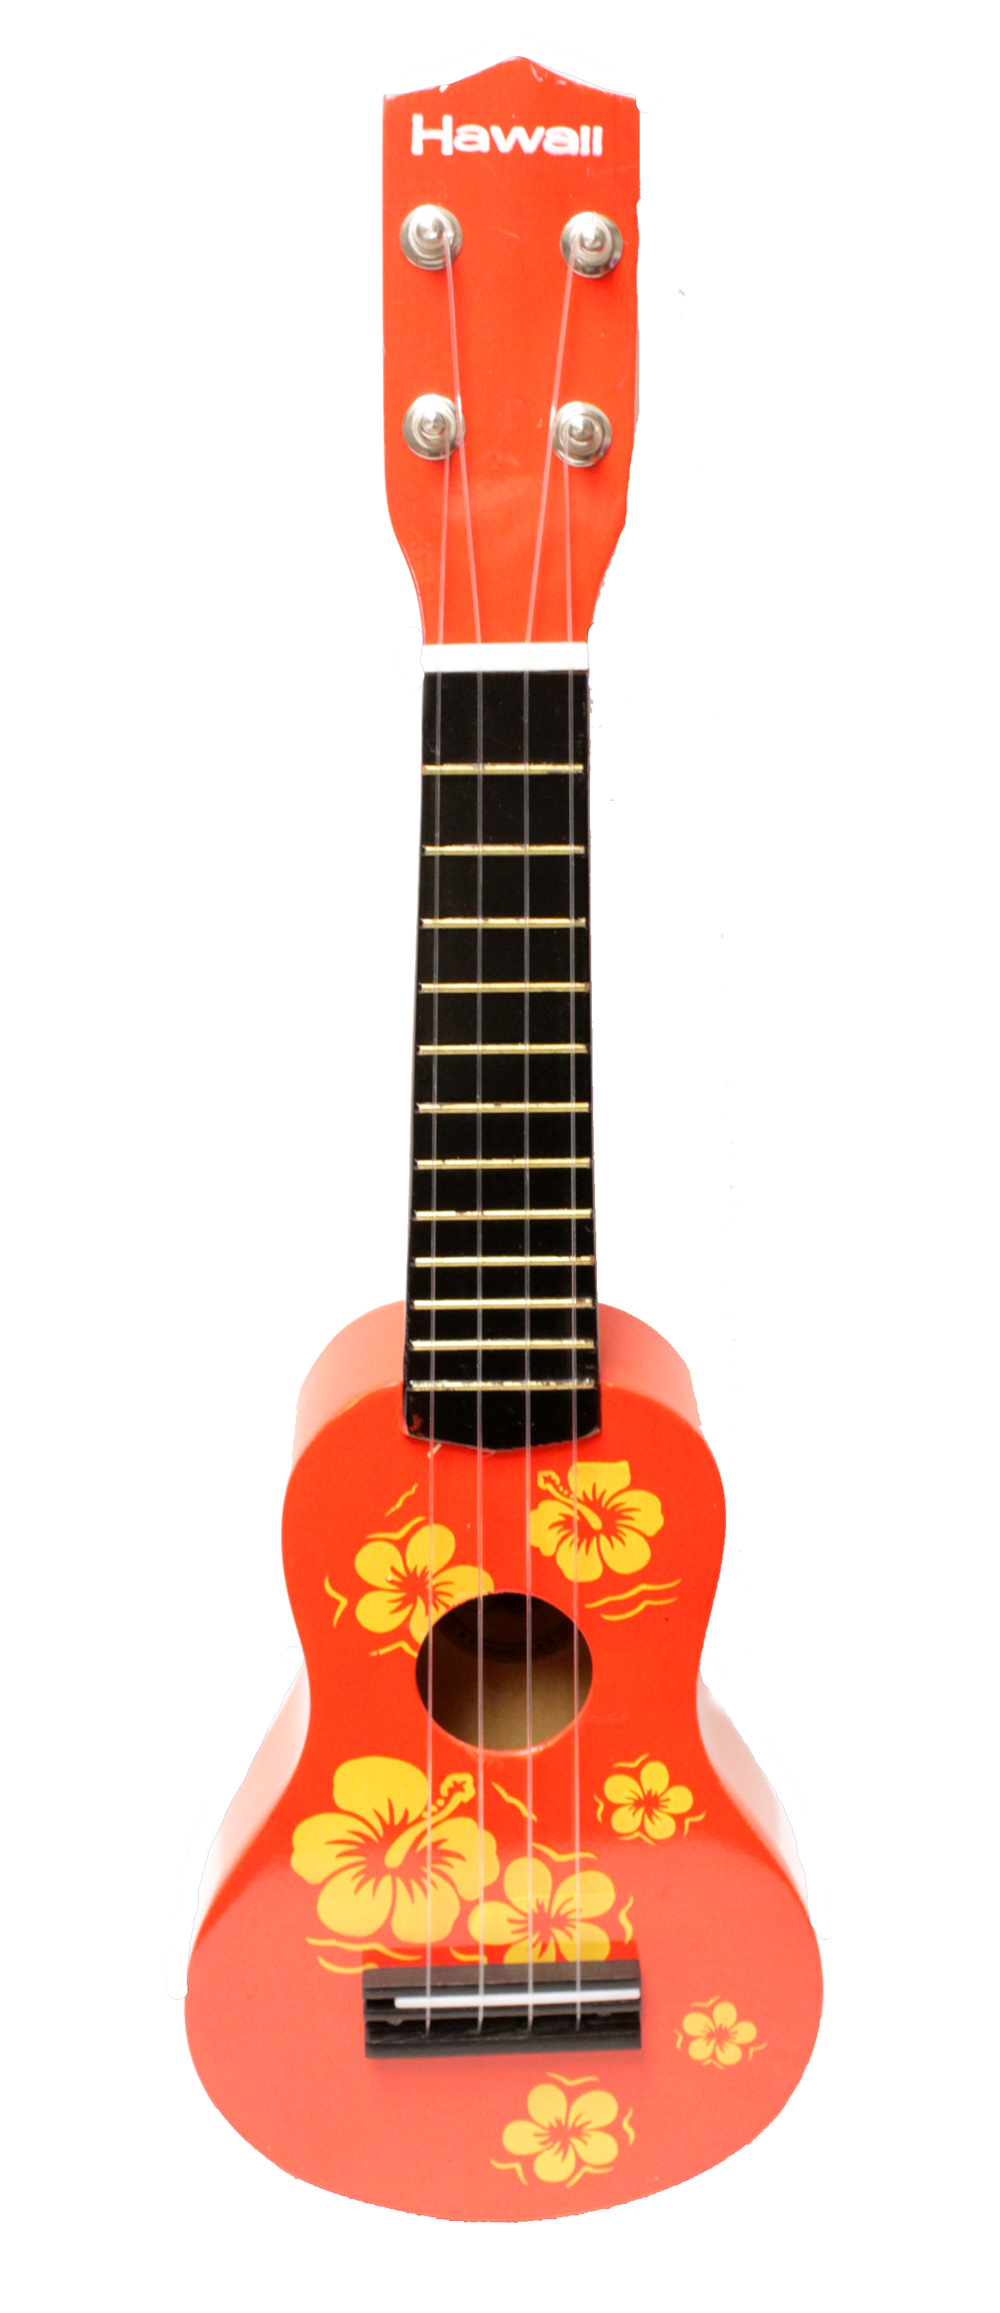 new 21 hawiian luau party toy ukulele guitar with nylon strings ebay. Black Bedroom Furniture Sets. Home Design Ideas